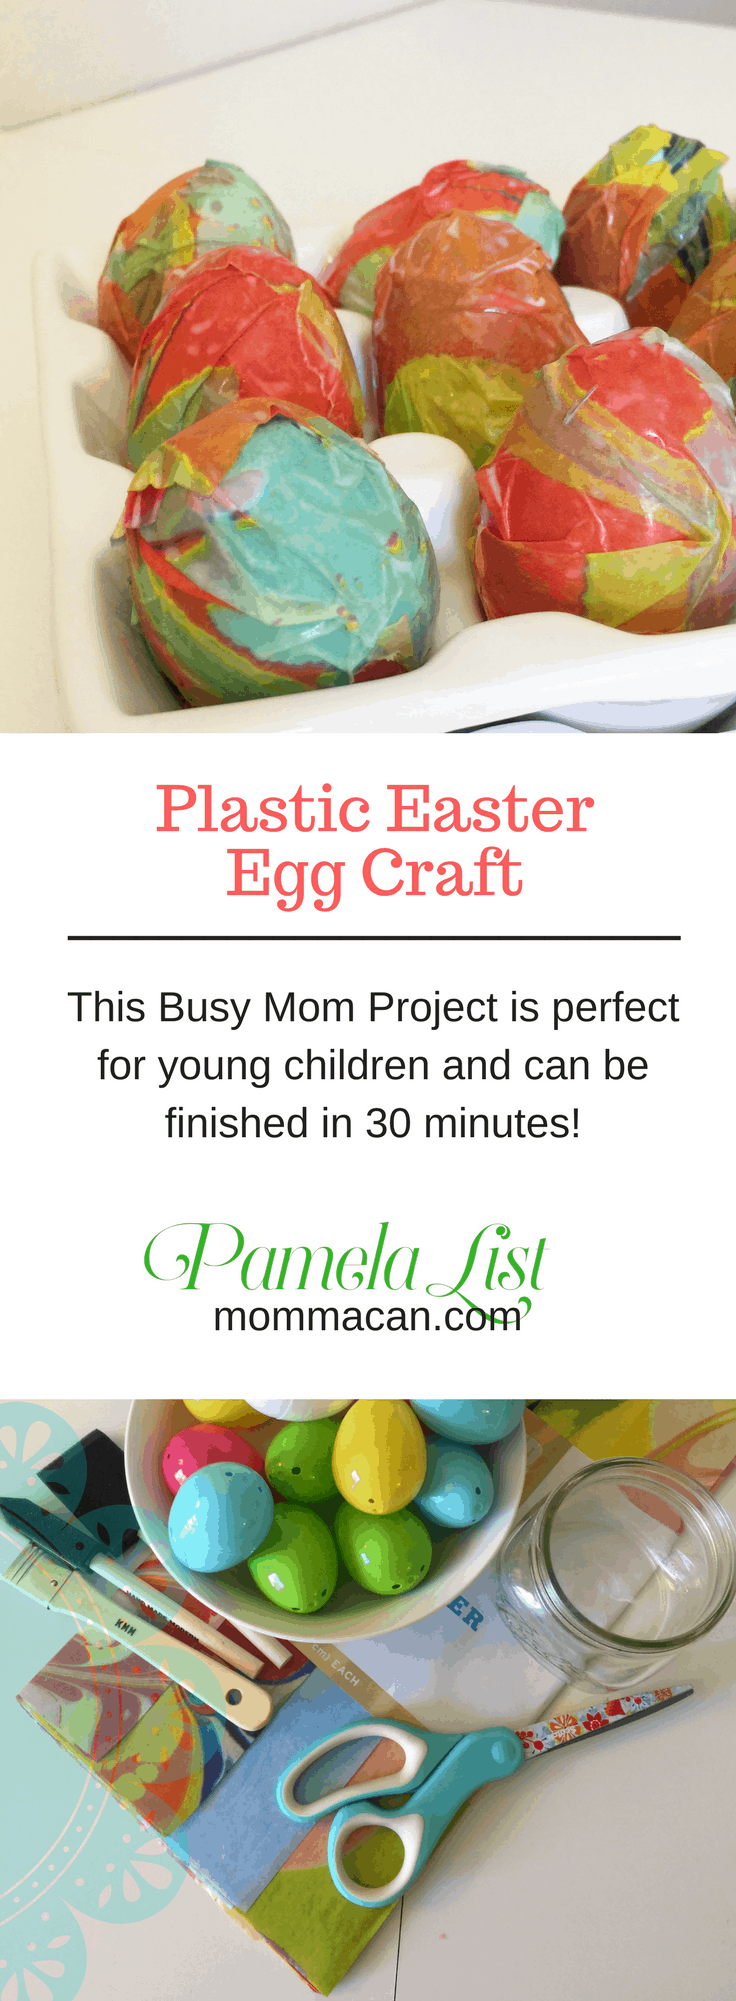 This Easter Egg Craft is made from items you probably have at home and can be completed in 30 minutes. Enjoy this craft with your school aged children and then display as an Easter Decoration.